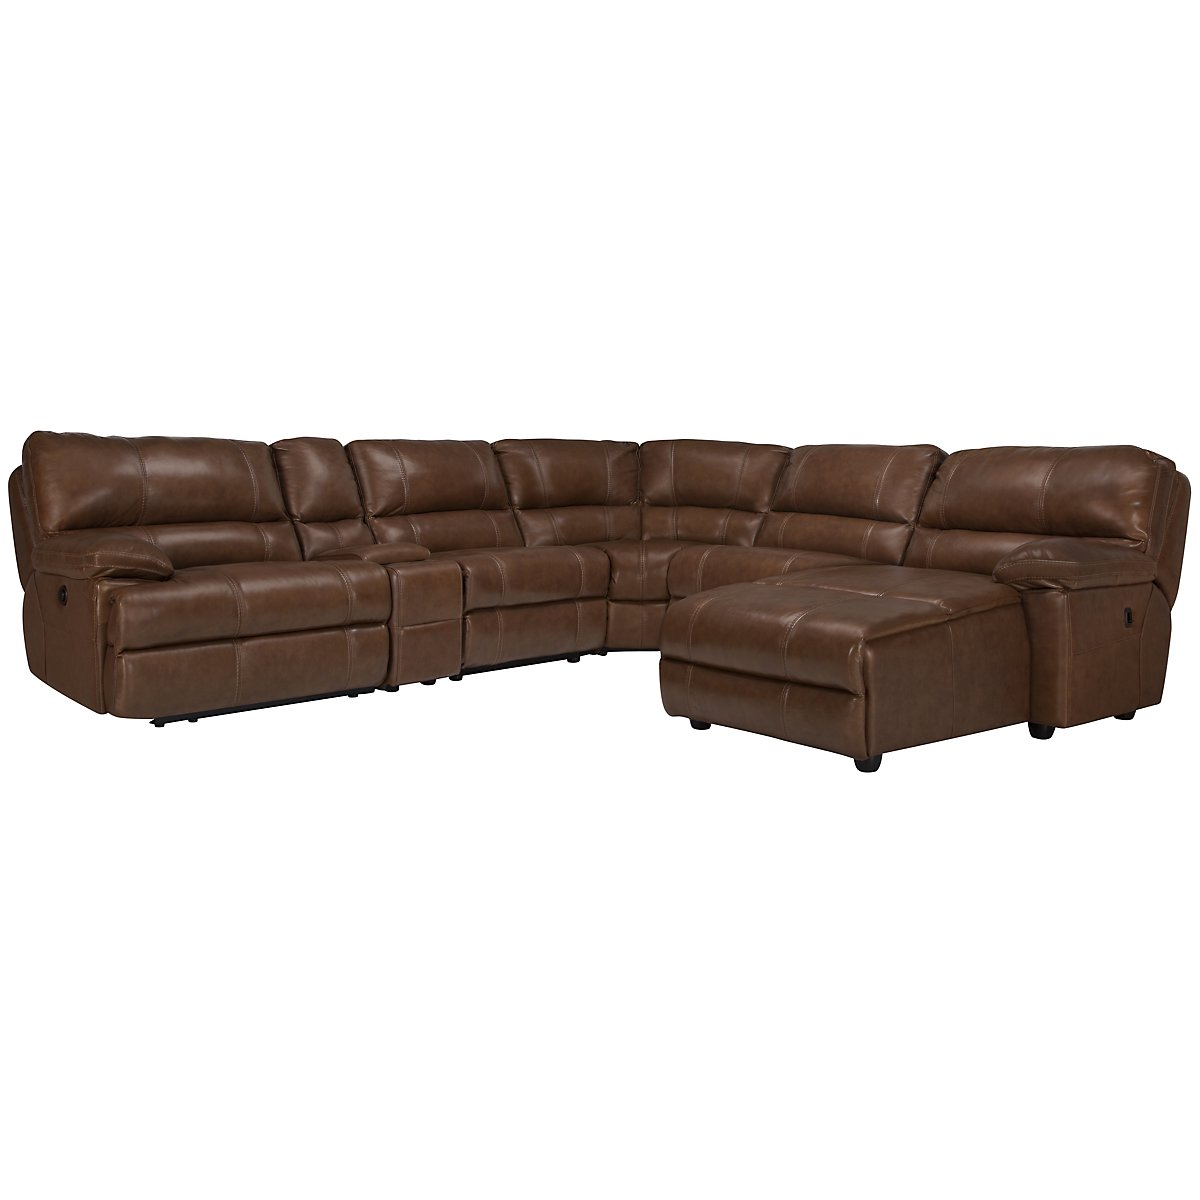 Alton2 Medium Brown Leather & Vinyl Right Chaise Manually Reclining Sectional